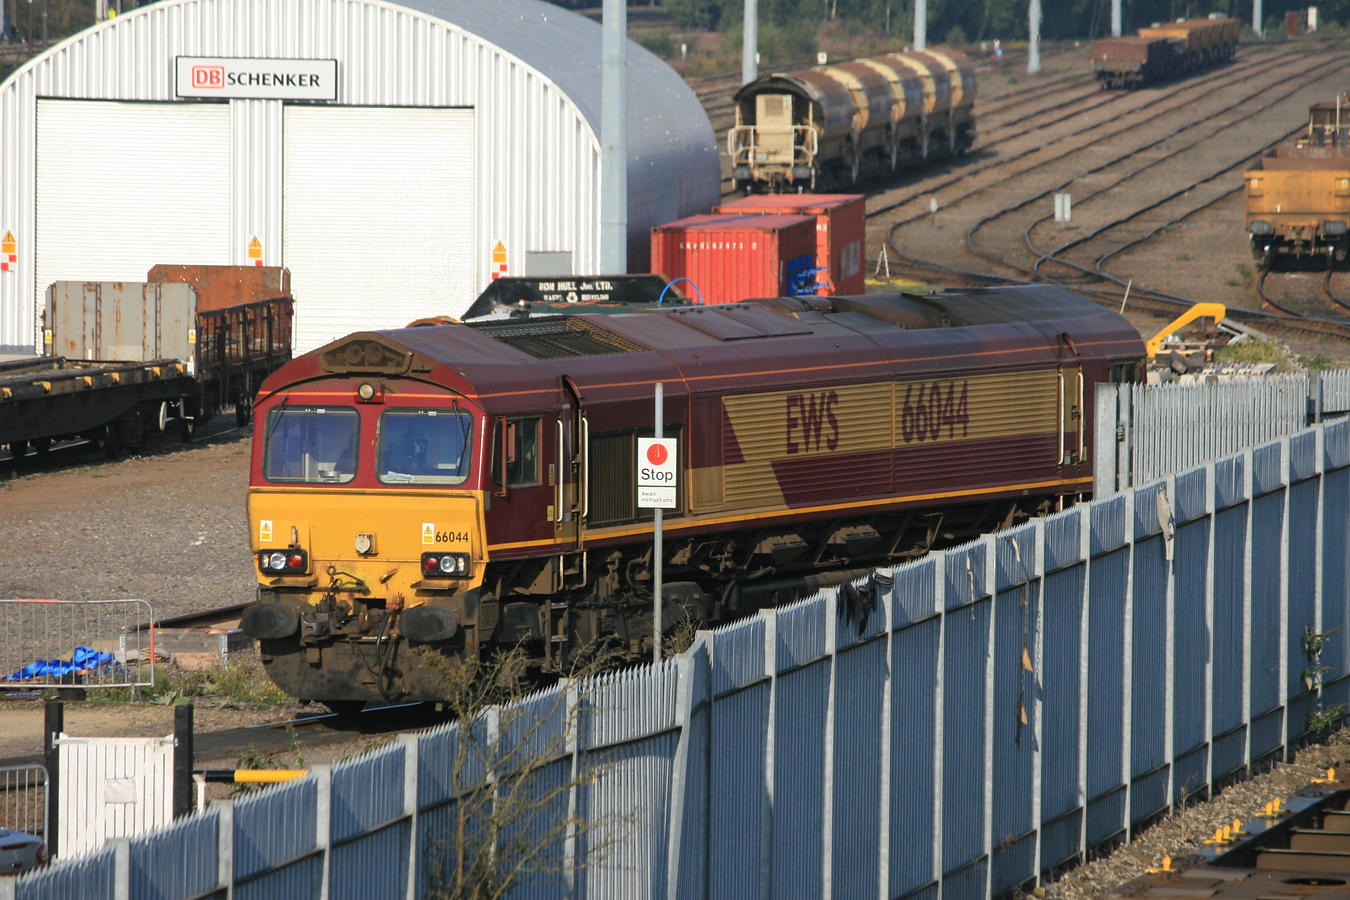 66044_Doncaster_20092015 (5)_DBS